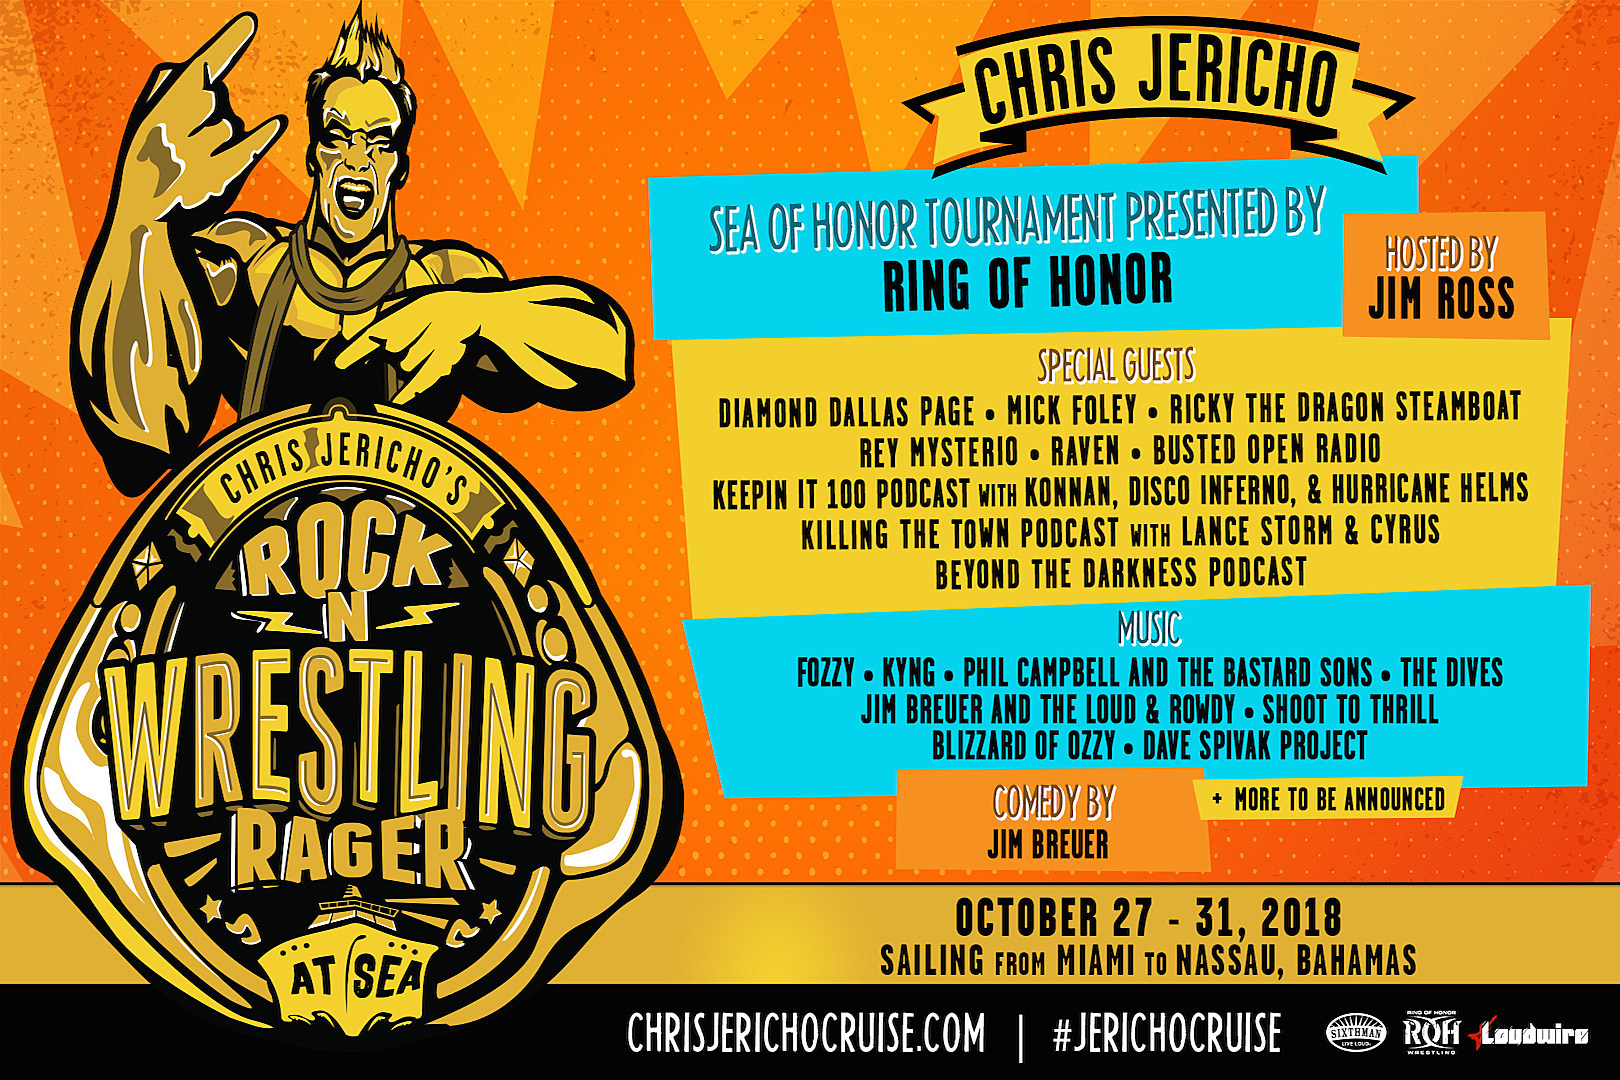 Chris Jericho's Rock 'N' Wrestling Rager At Sea ...